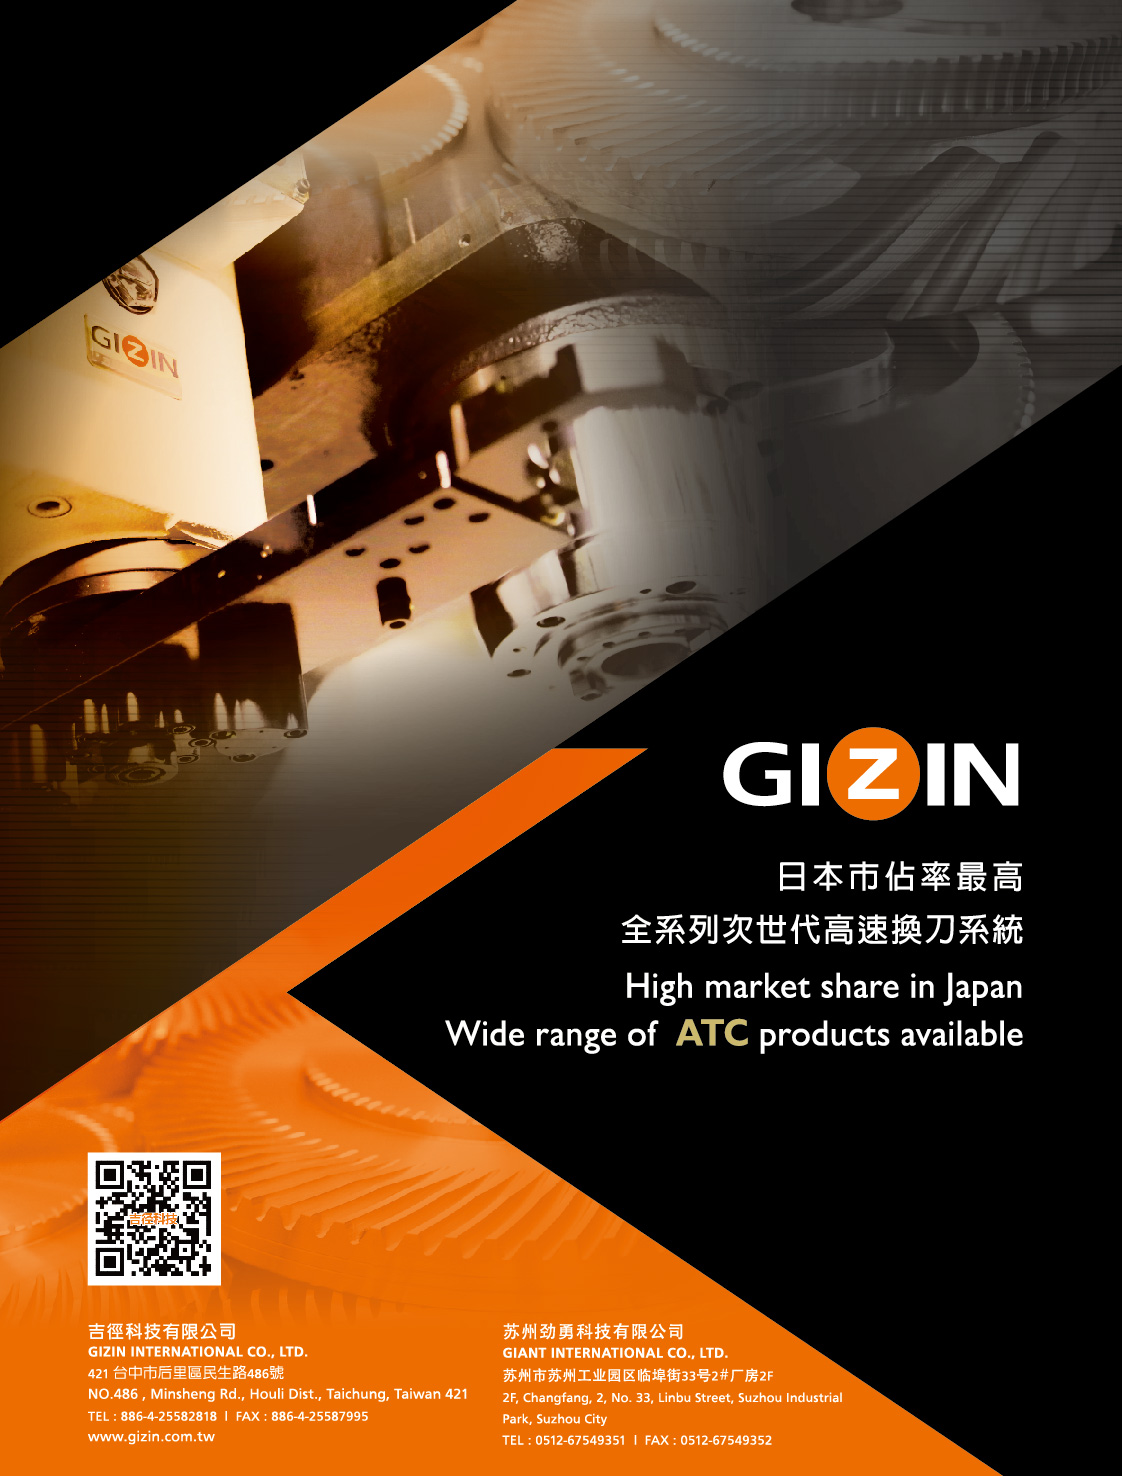 GIZIN INTERNATIONAL CO., LTD.